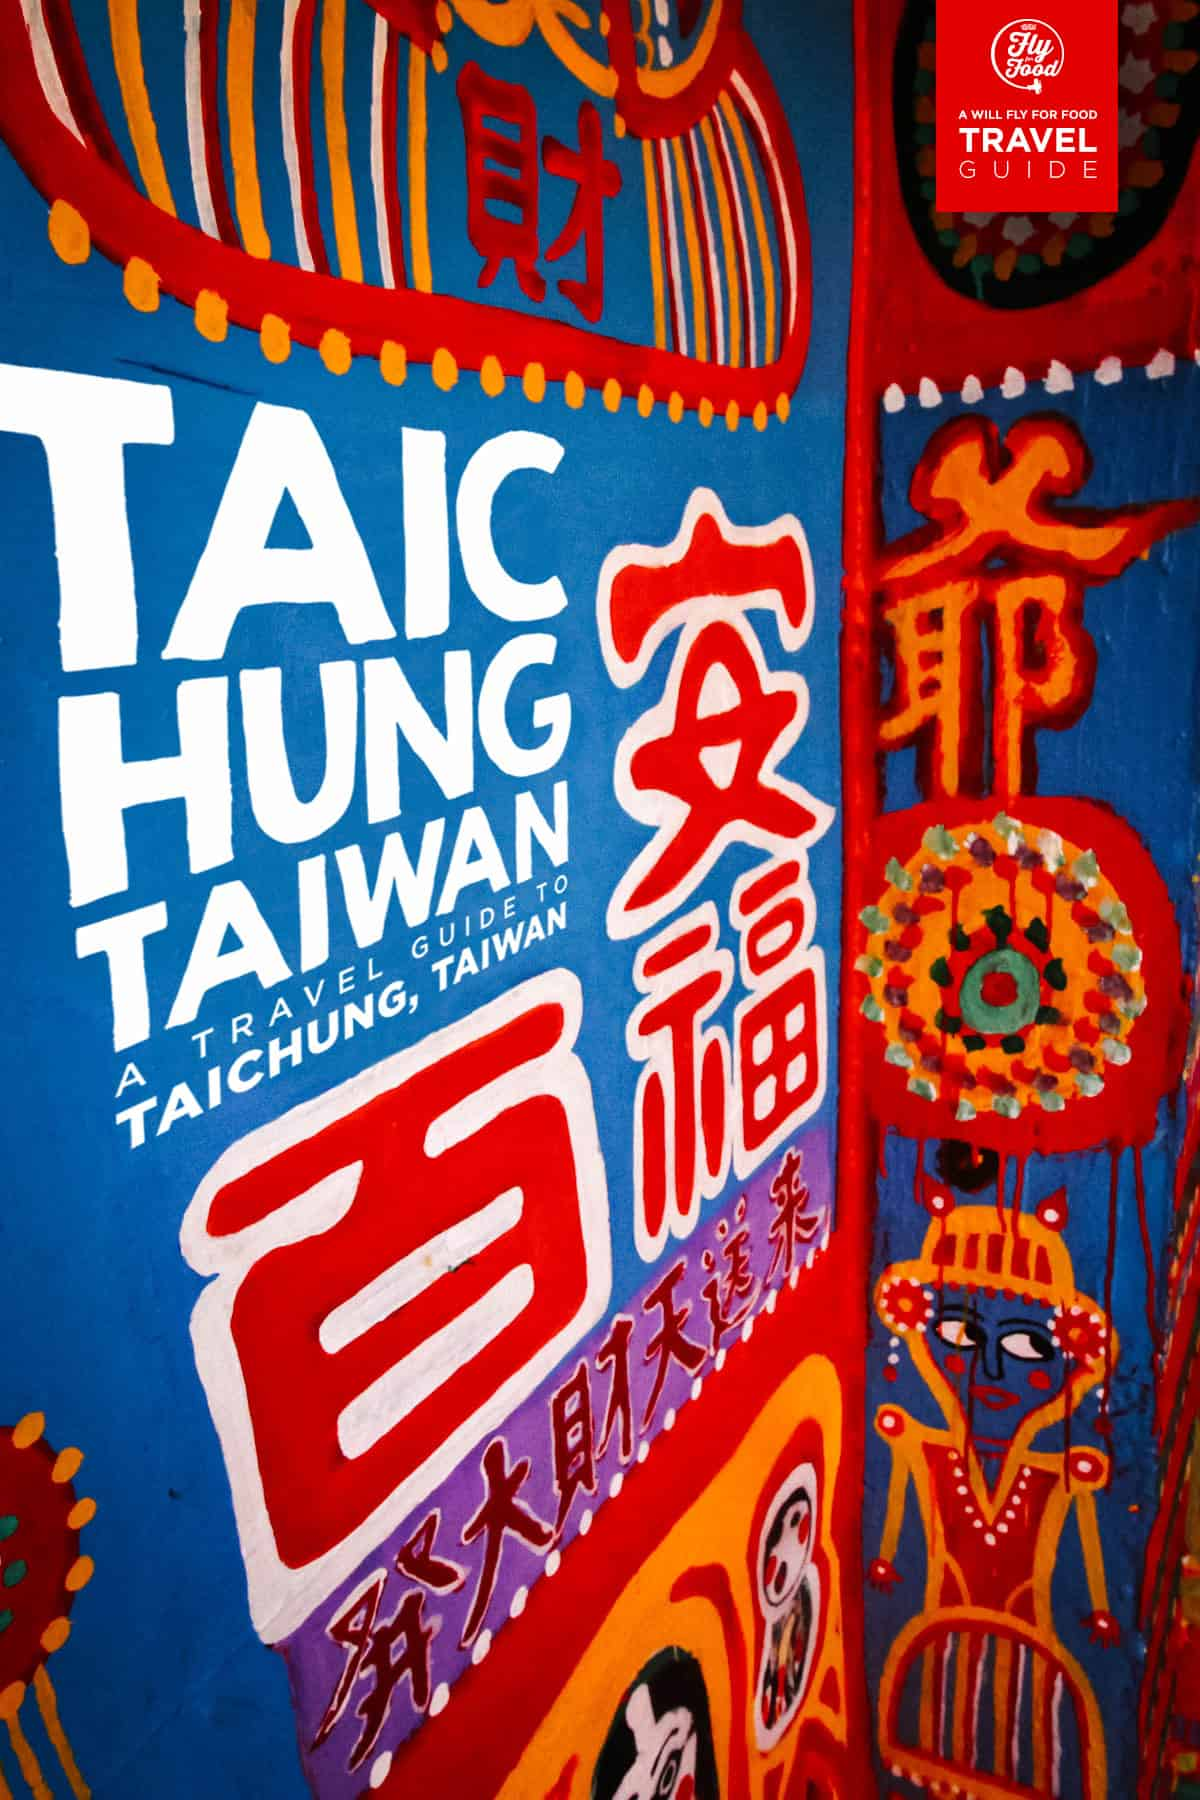 The First-Timer's Travel Guide to Taichung, Taiwan | Will